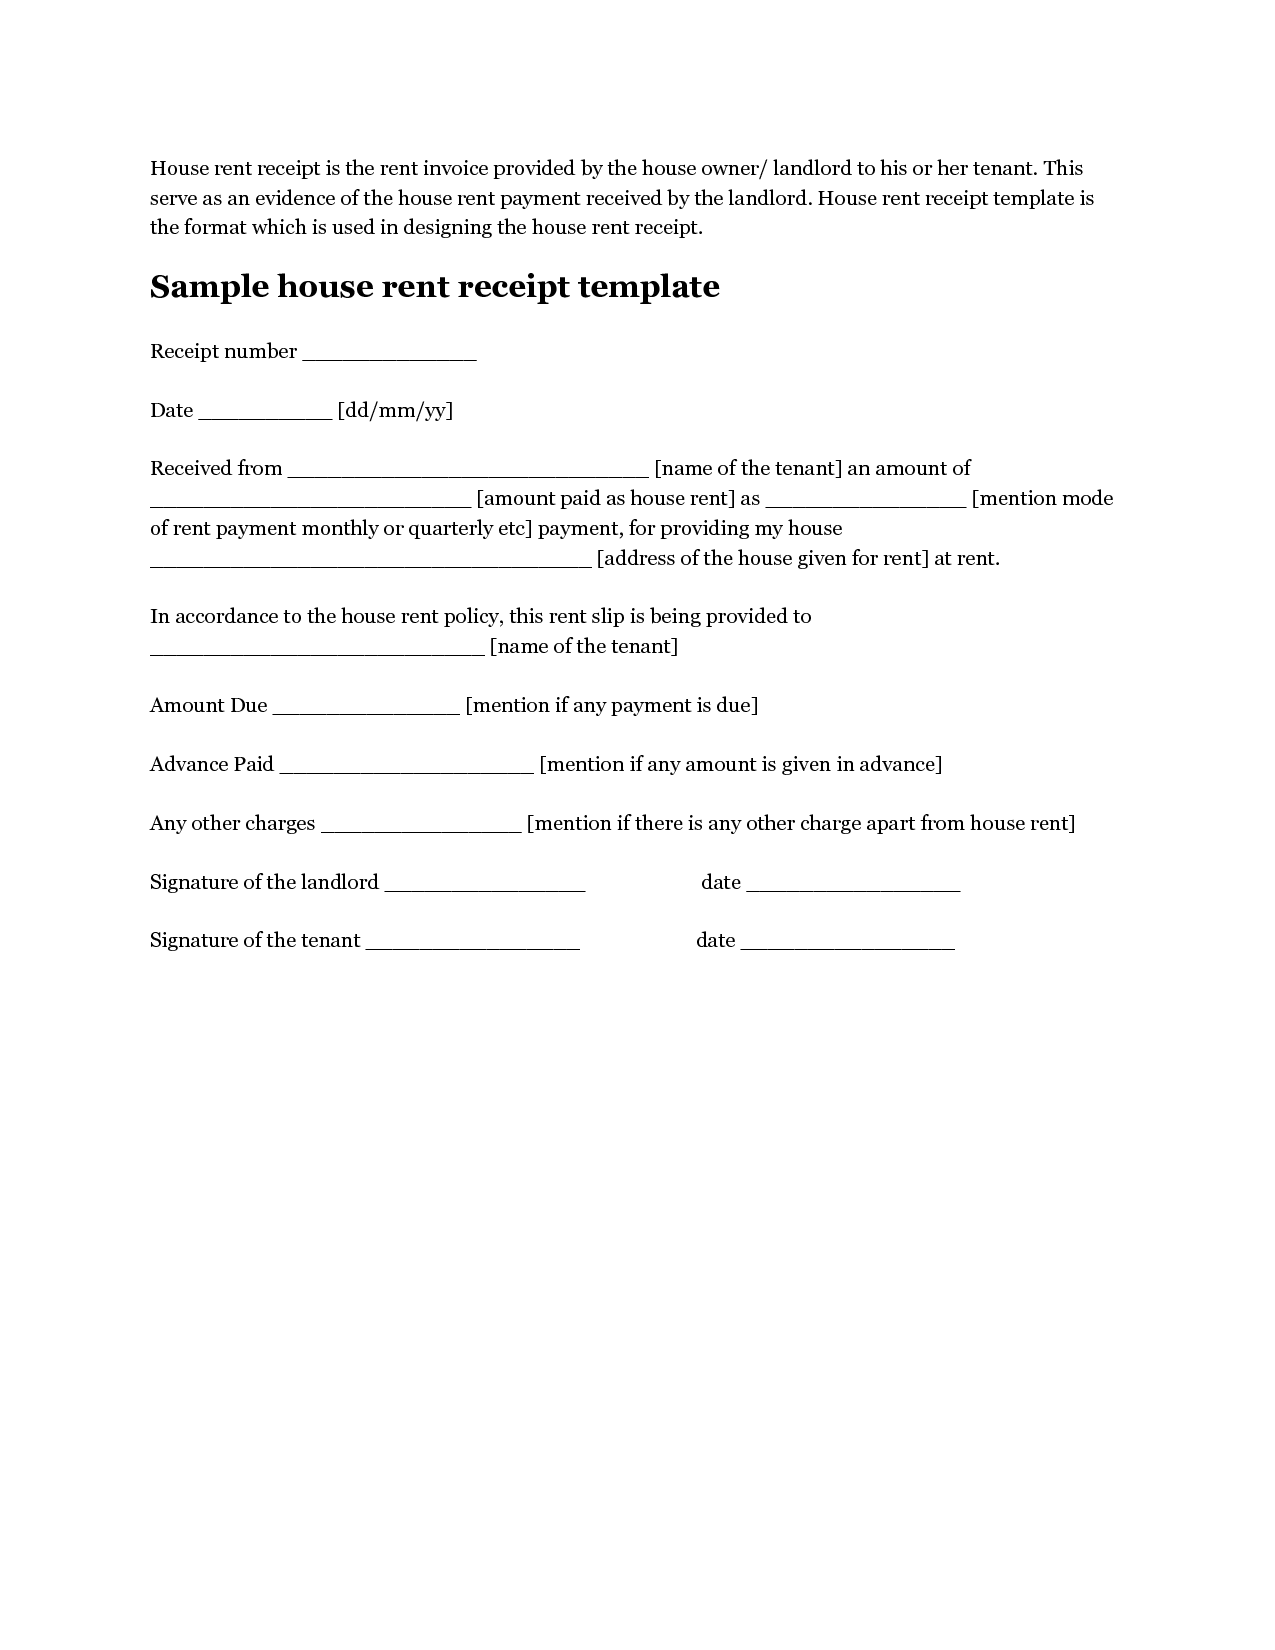 Free House Rental Invoice  Download House Rent Receipt Template